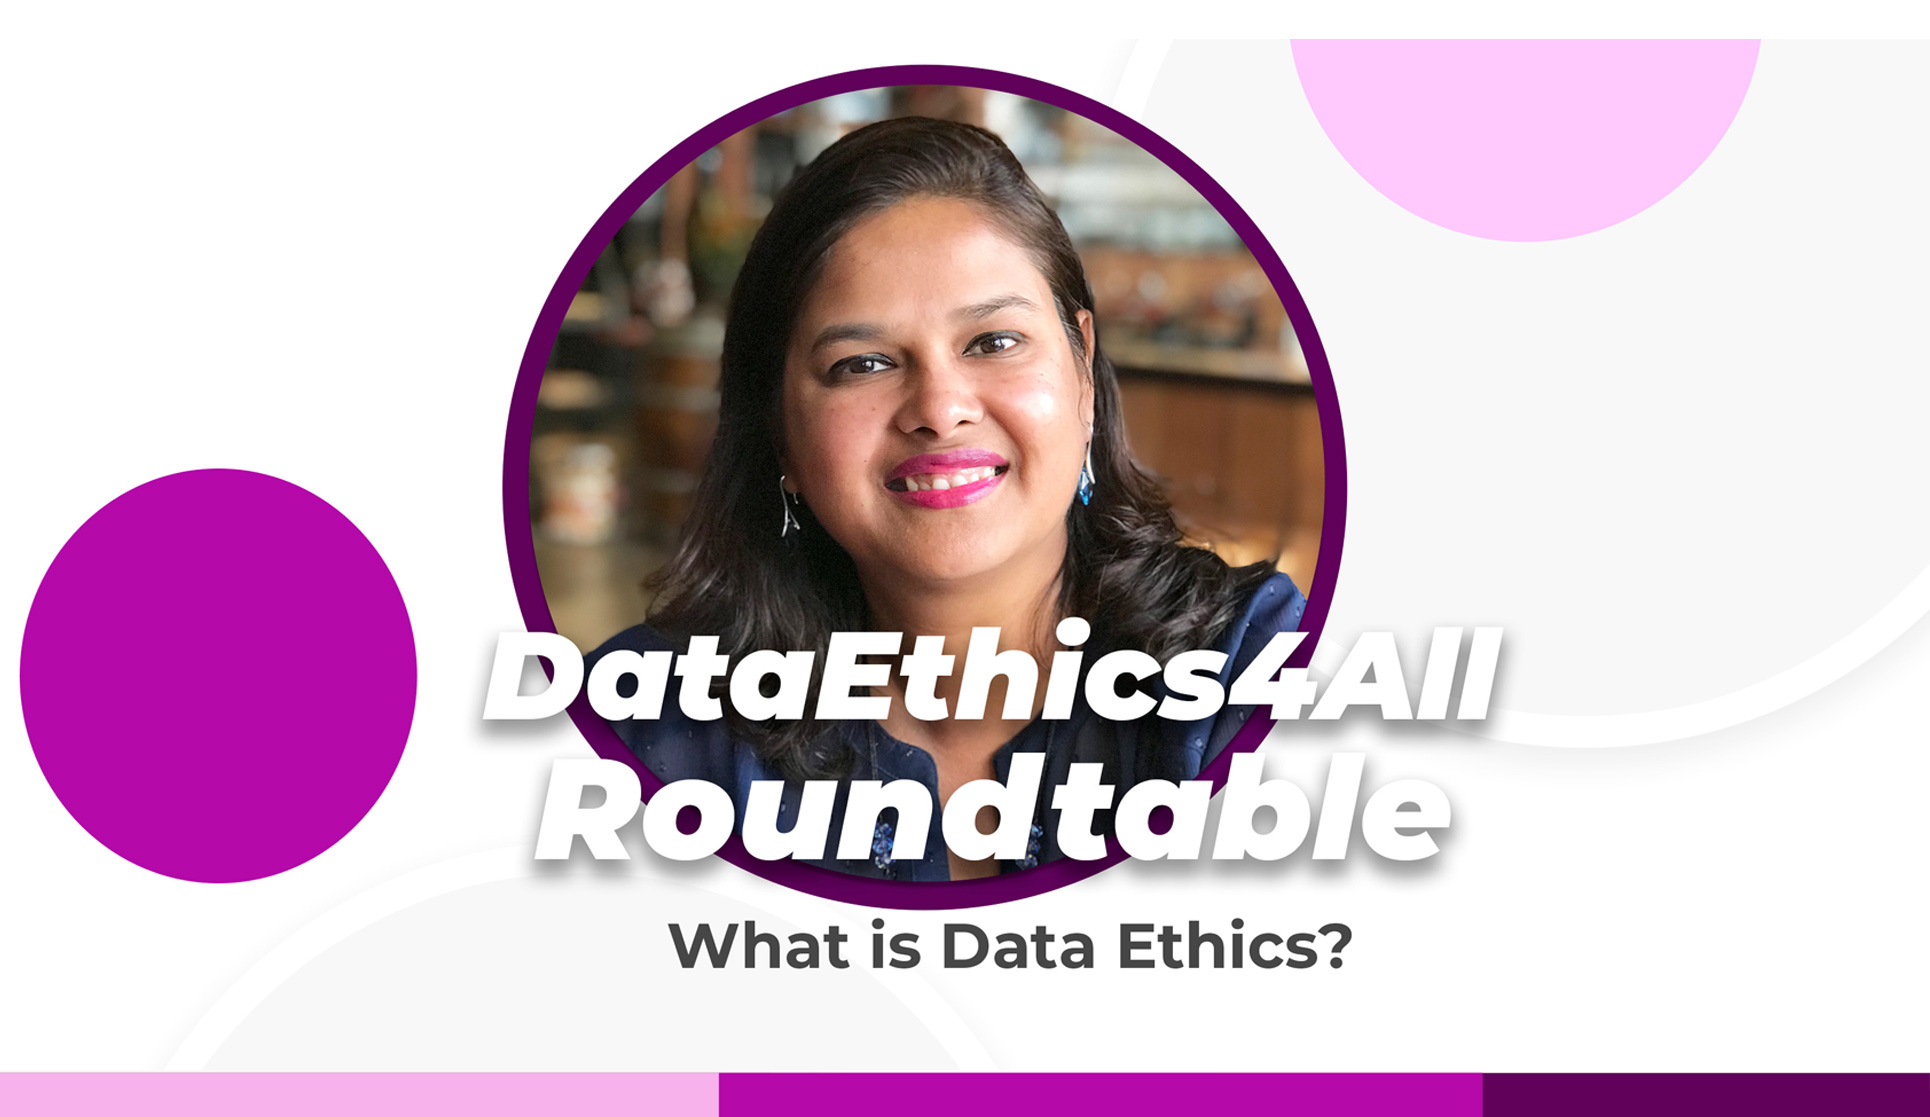 DataEthics4All-Roundtable-Podcast